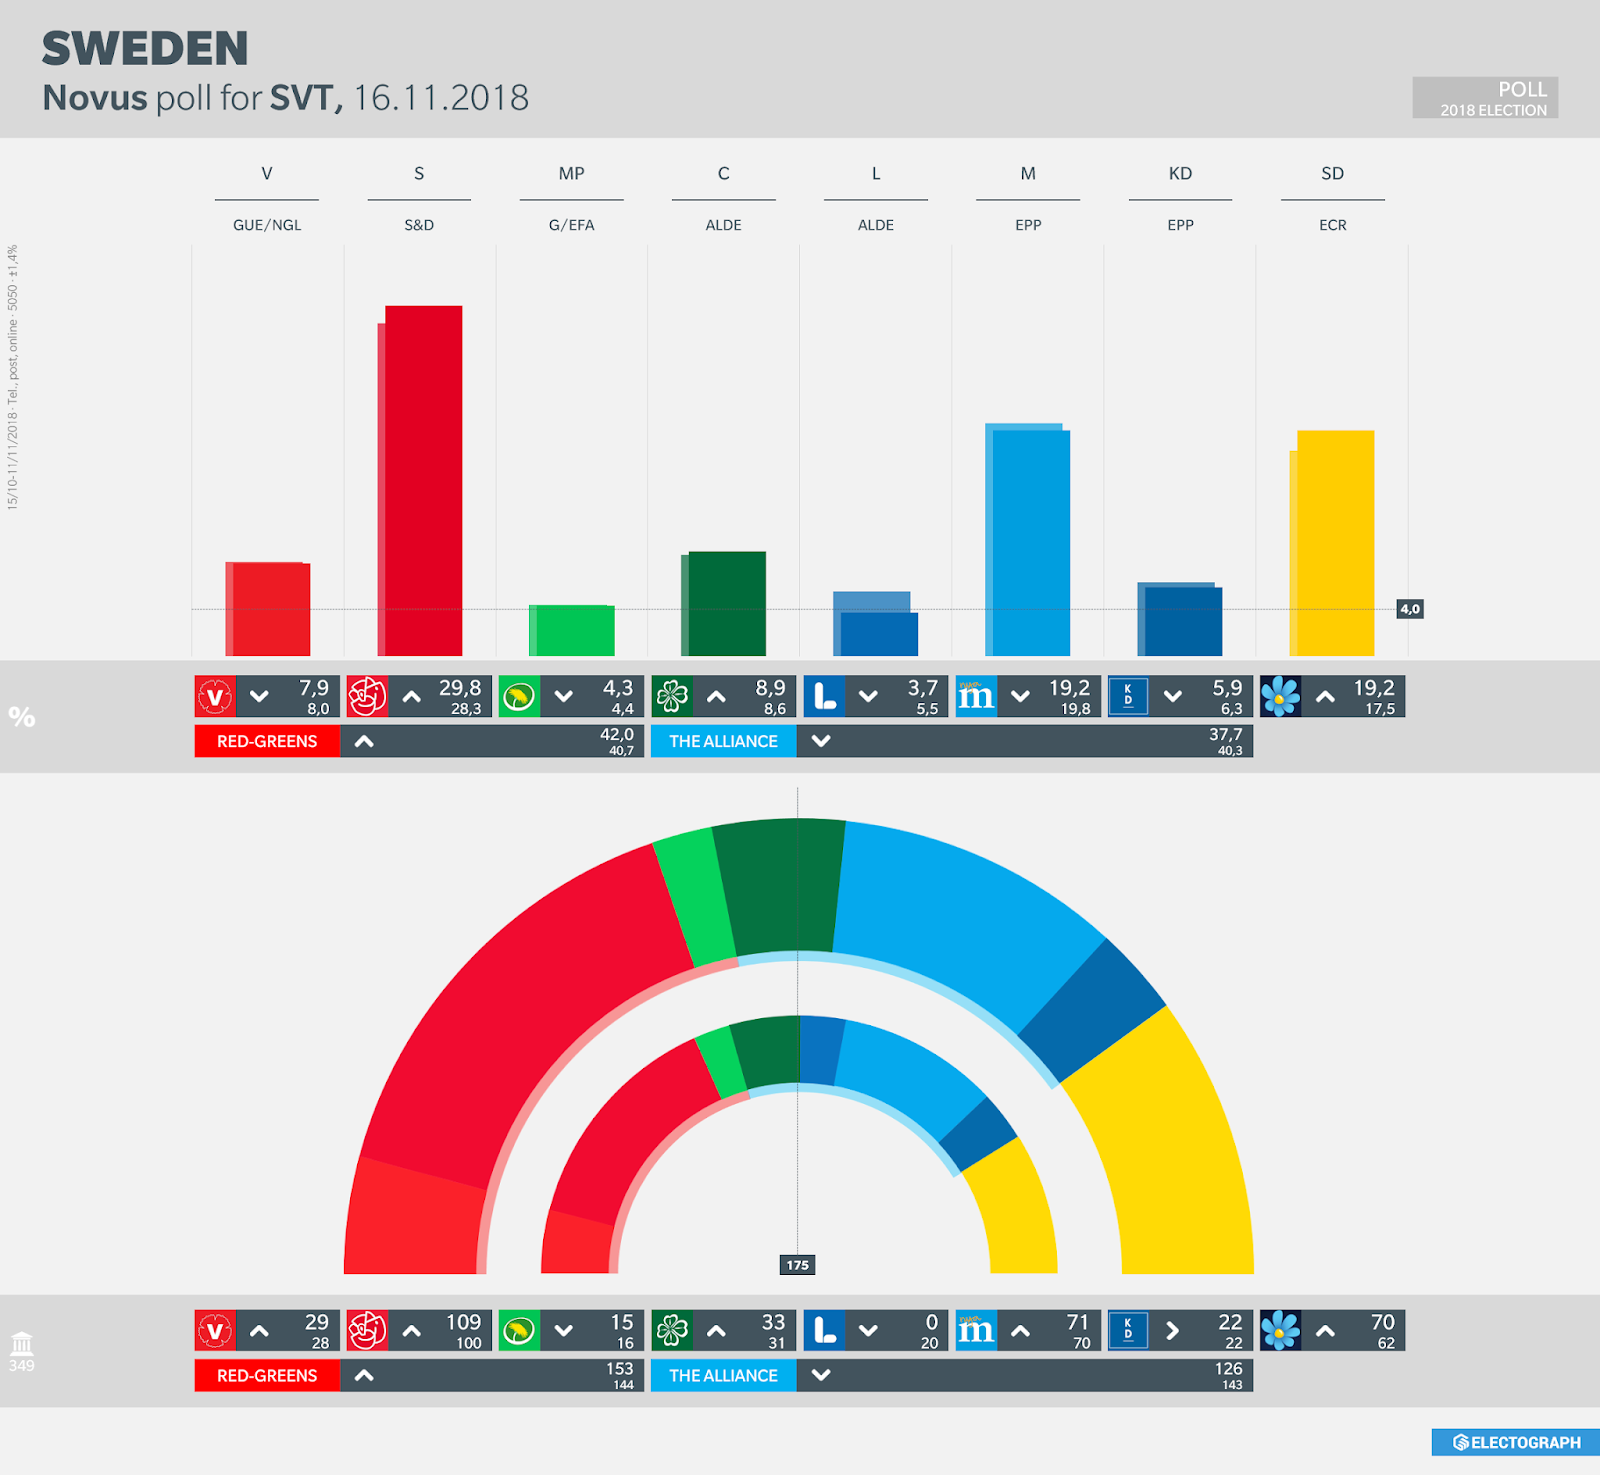 SWEDEN: Novus poll chart for SVT, November 2018